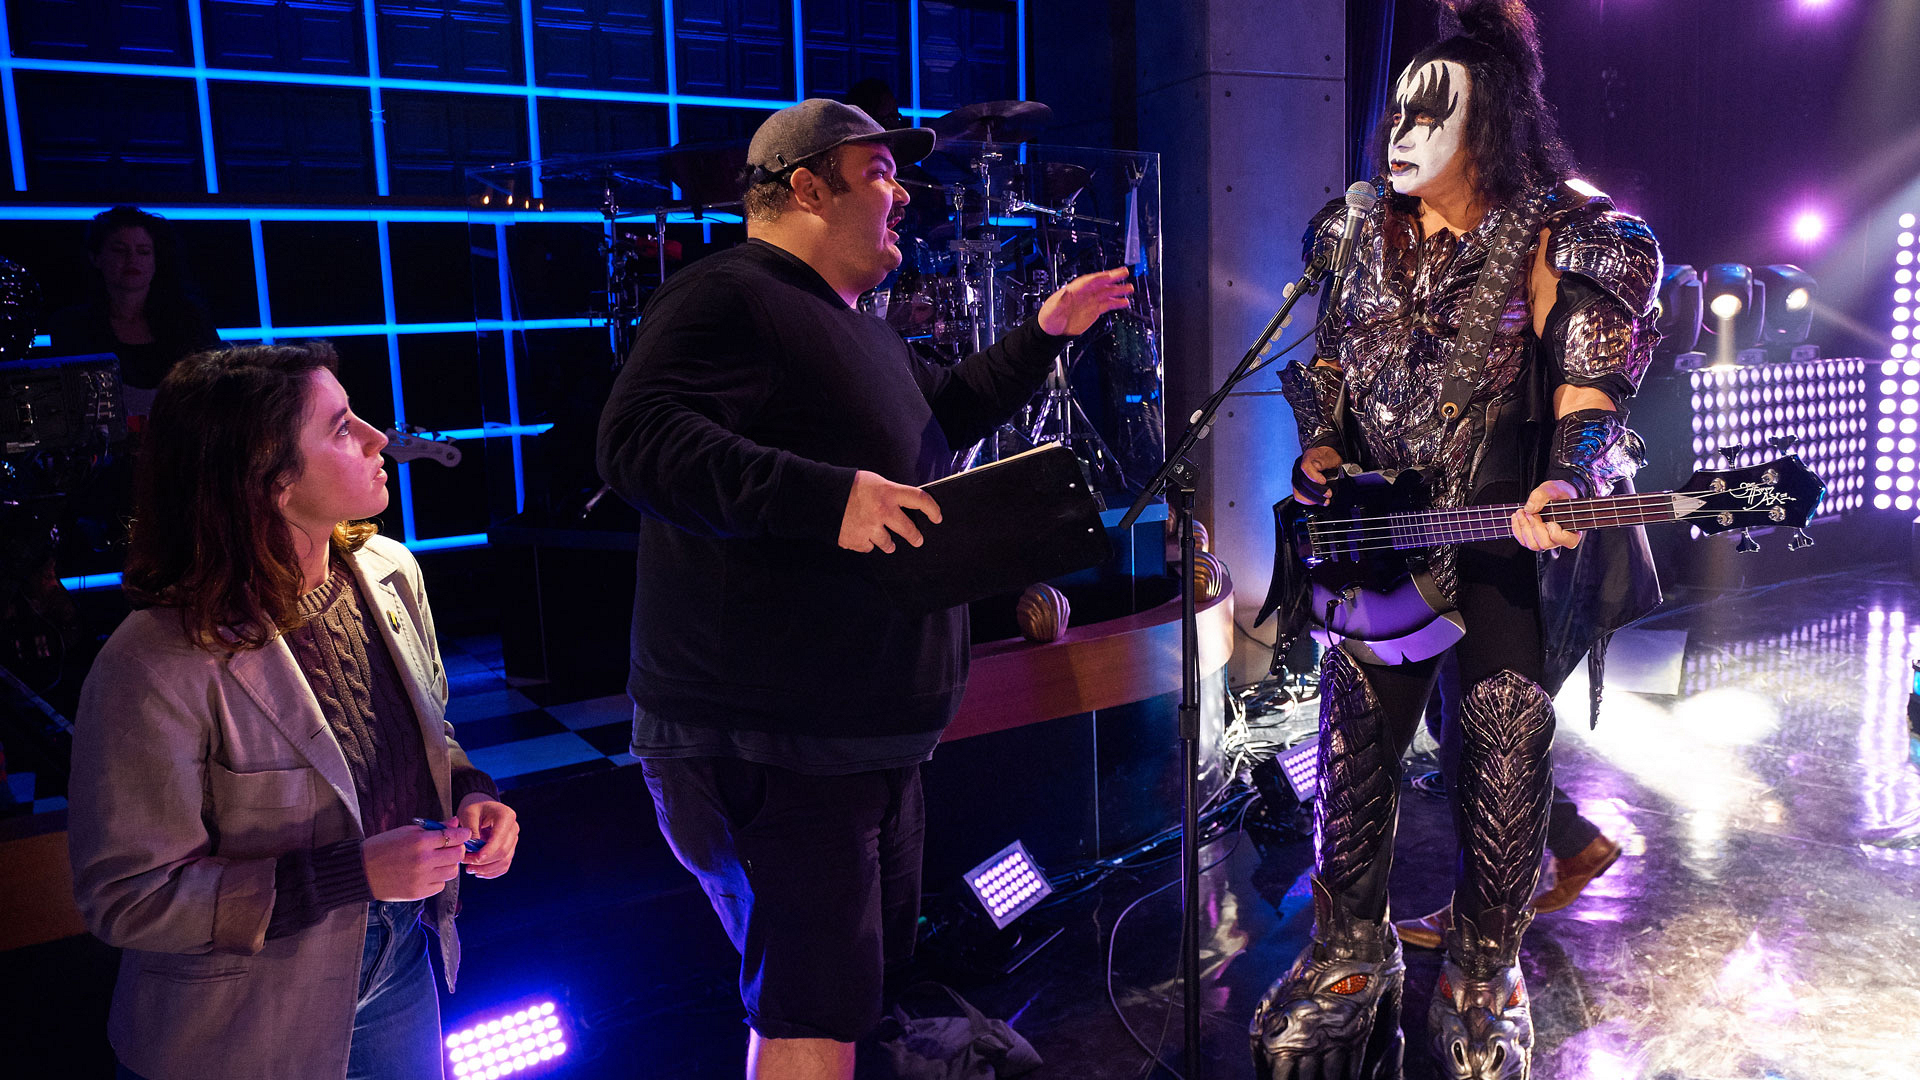 Writer Ian Karmel and Comedy Segment Producer Rosie Kaller prep Gene Simmons